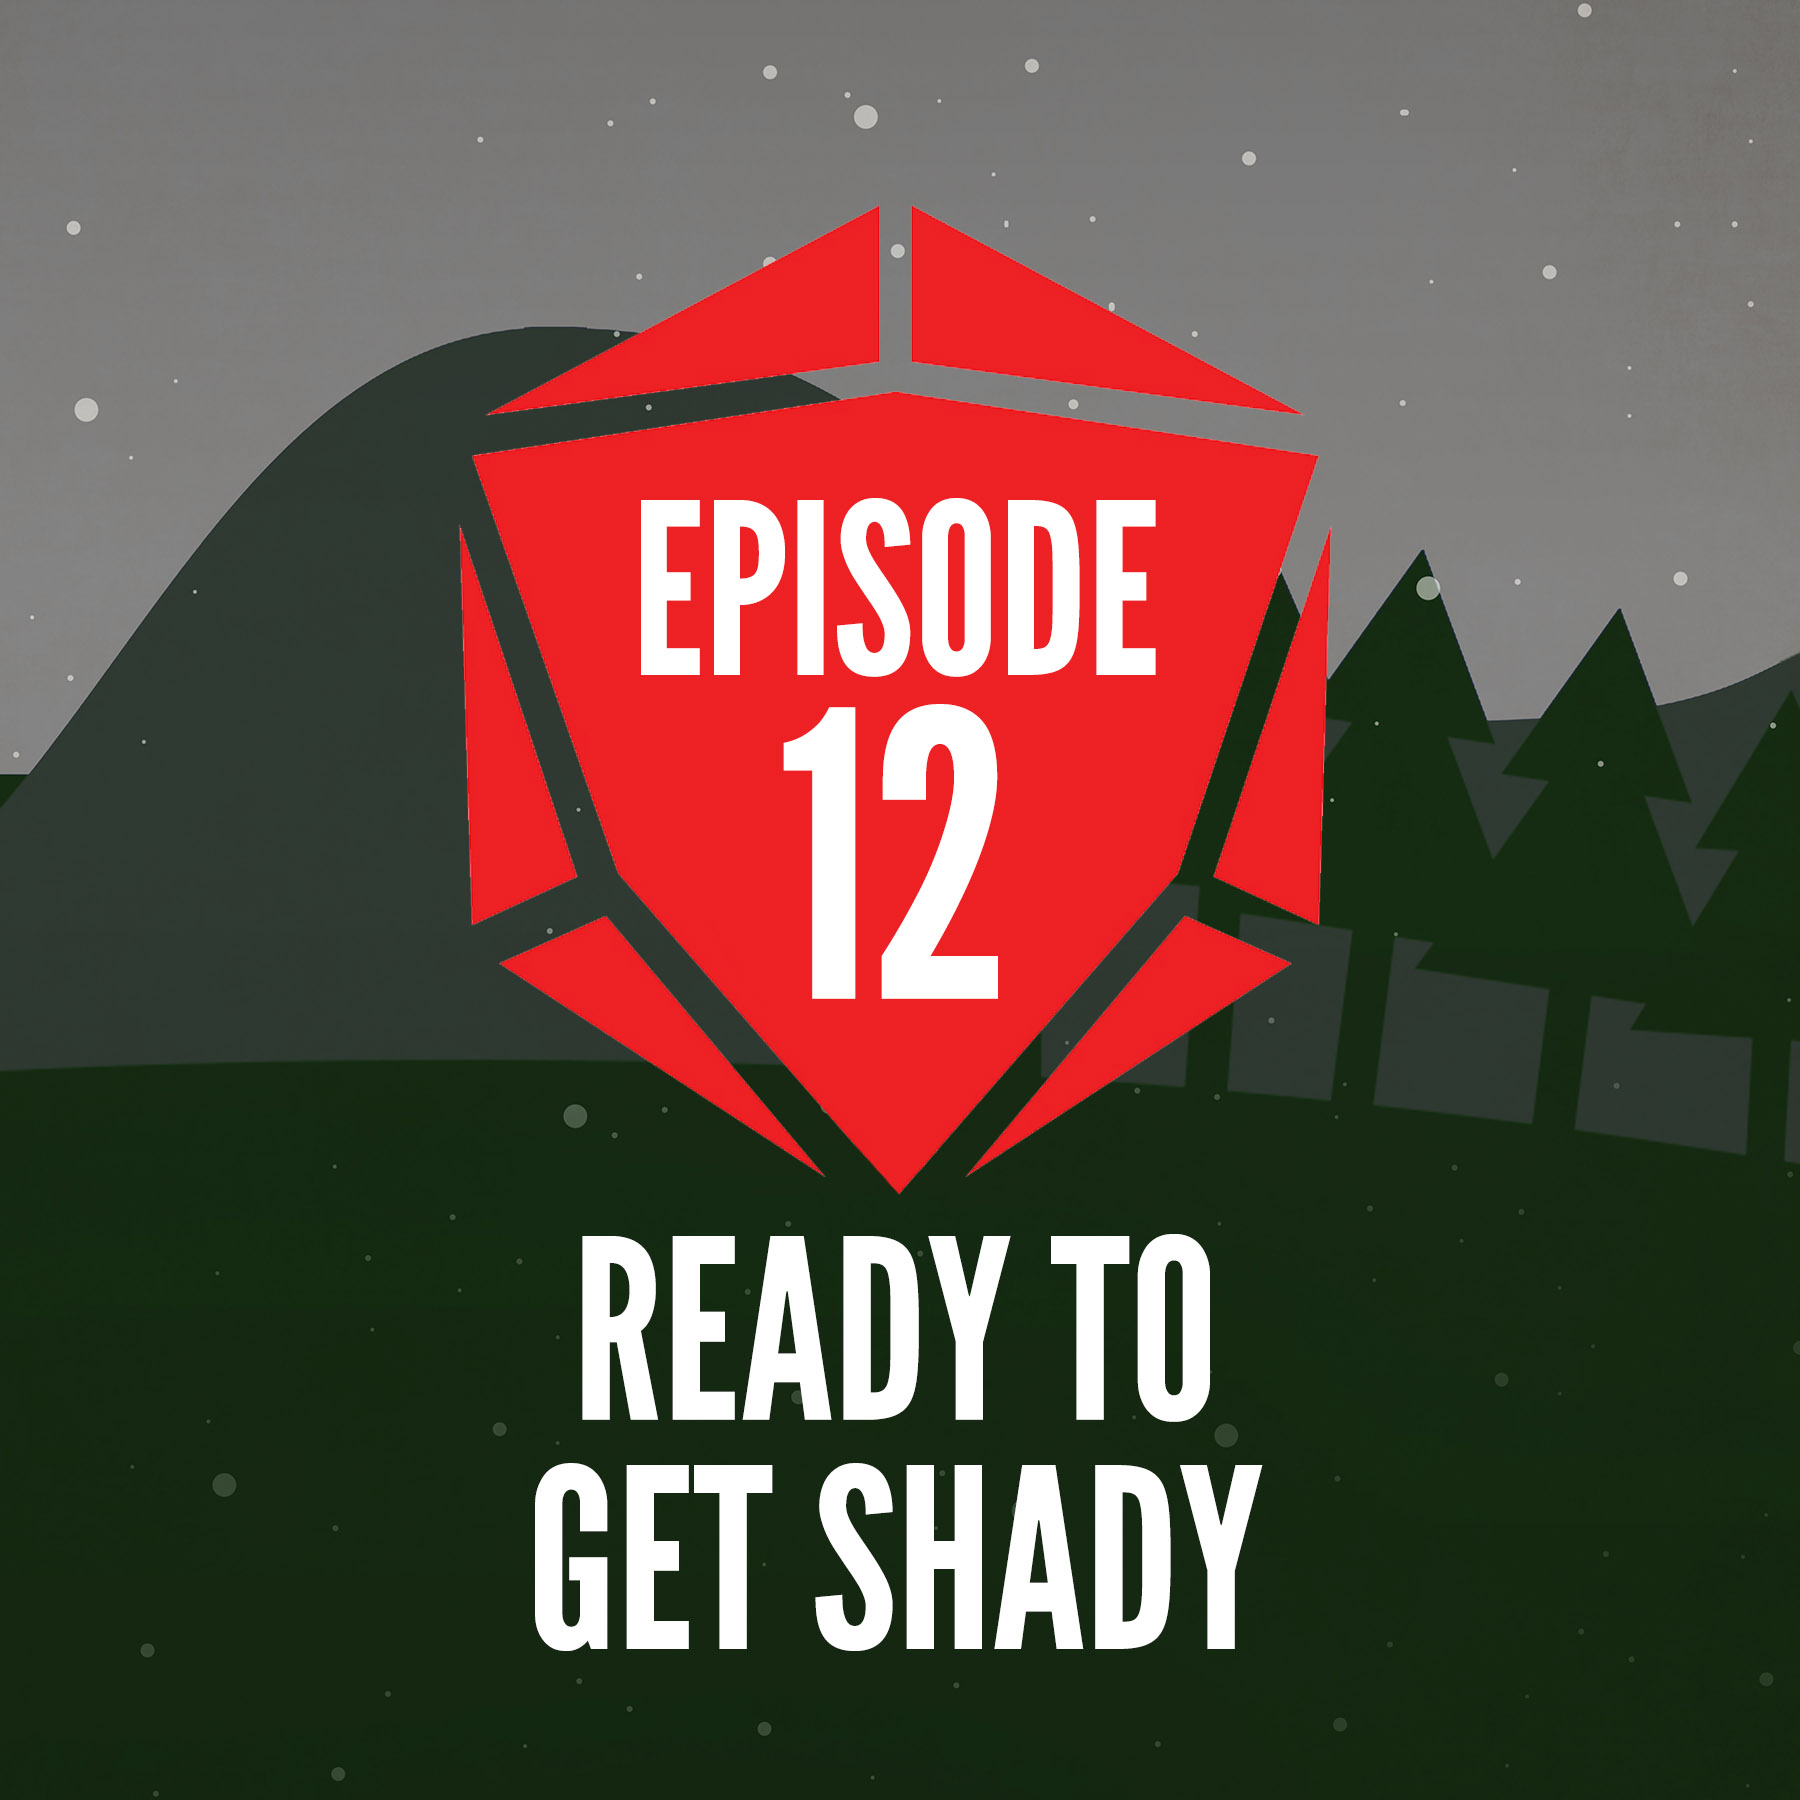 Episode 12: Ready to Get Shady